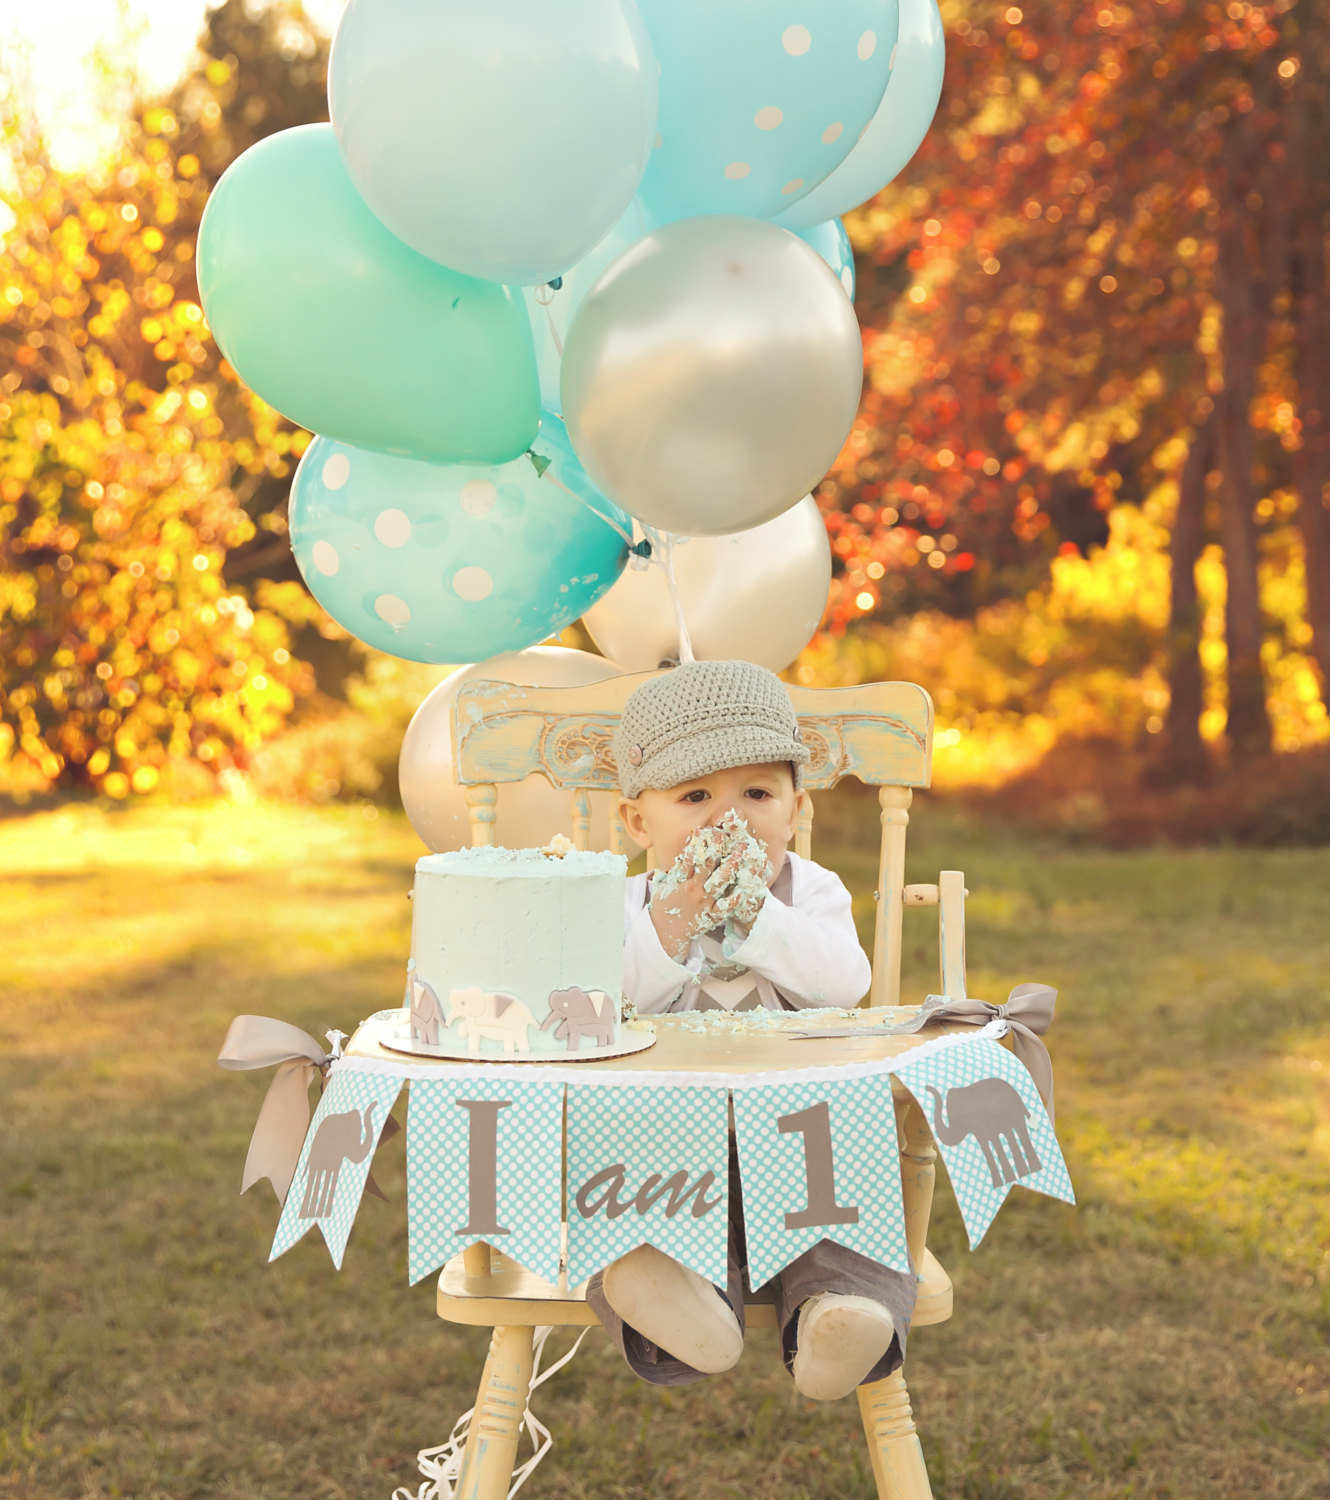 Best ideas about Baby'S First Birthday Gift Ideas . Save or Pin First Birthday The time to celebrate is here Now.